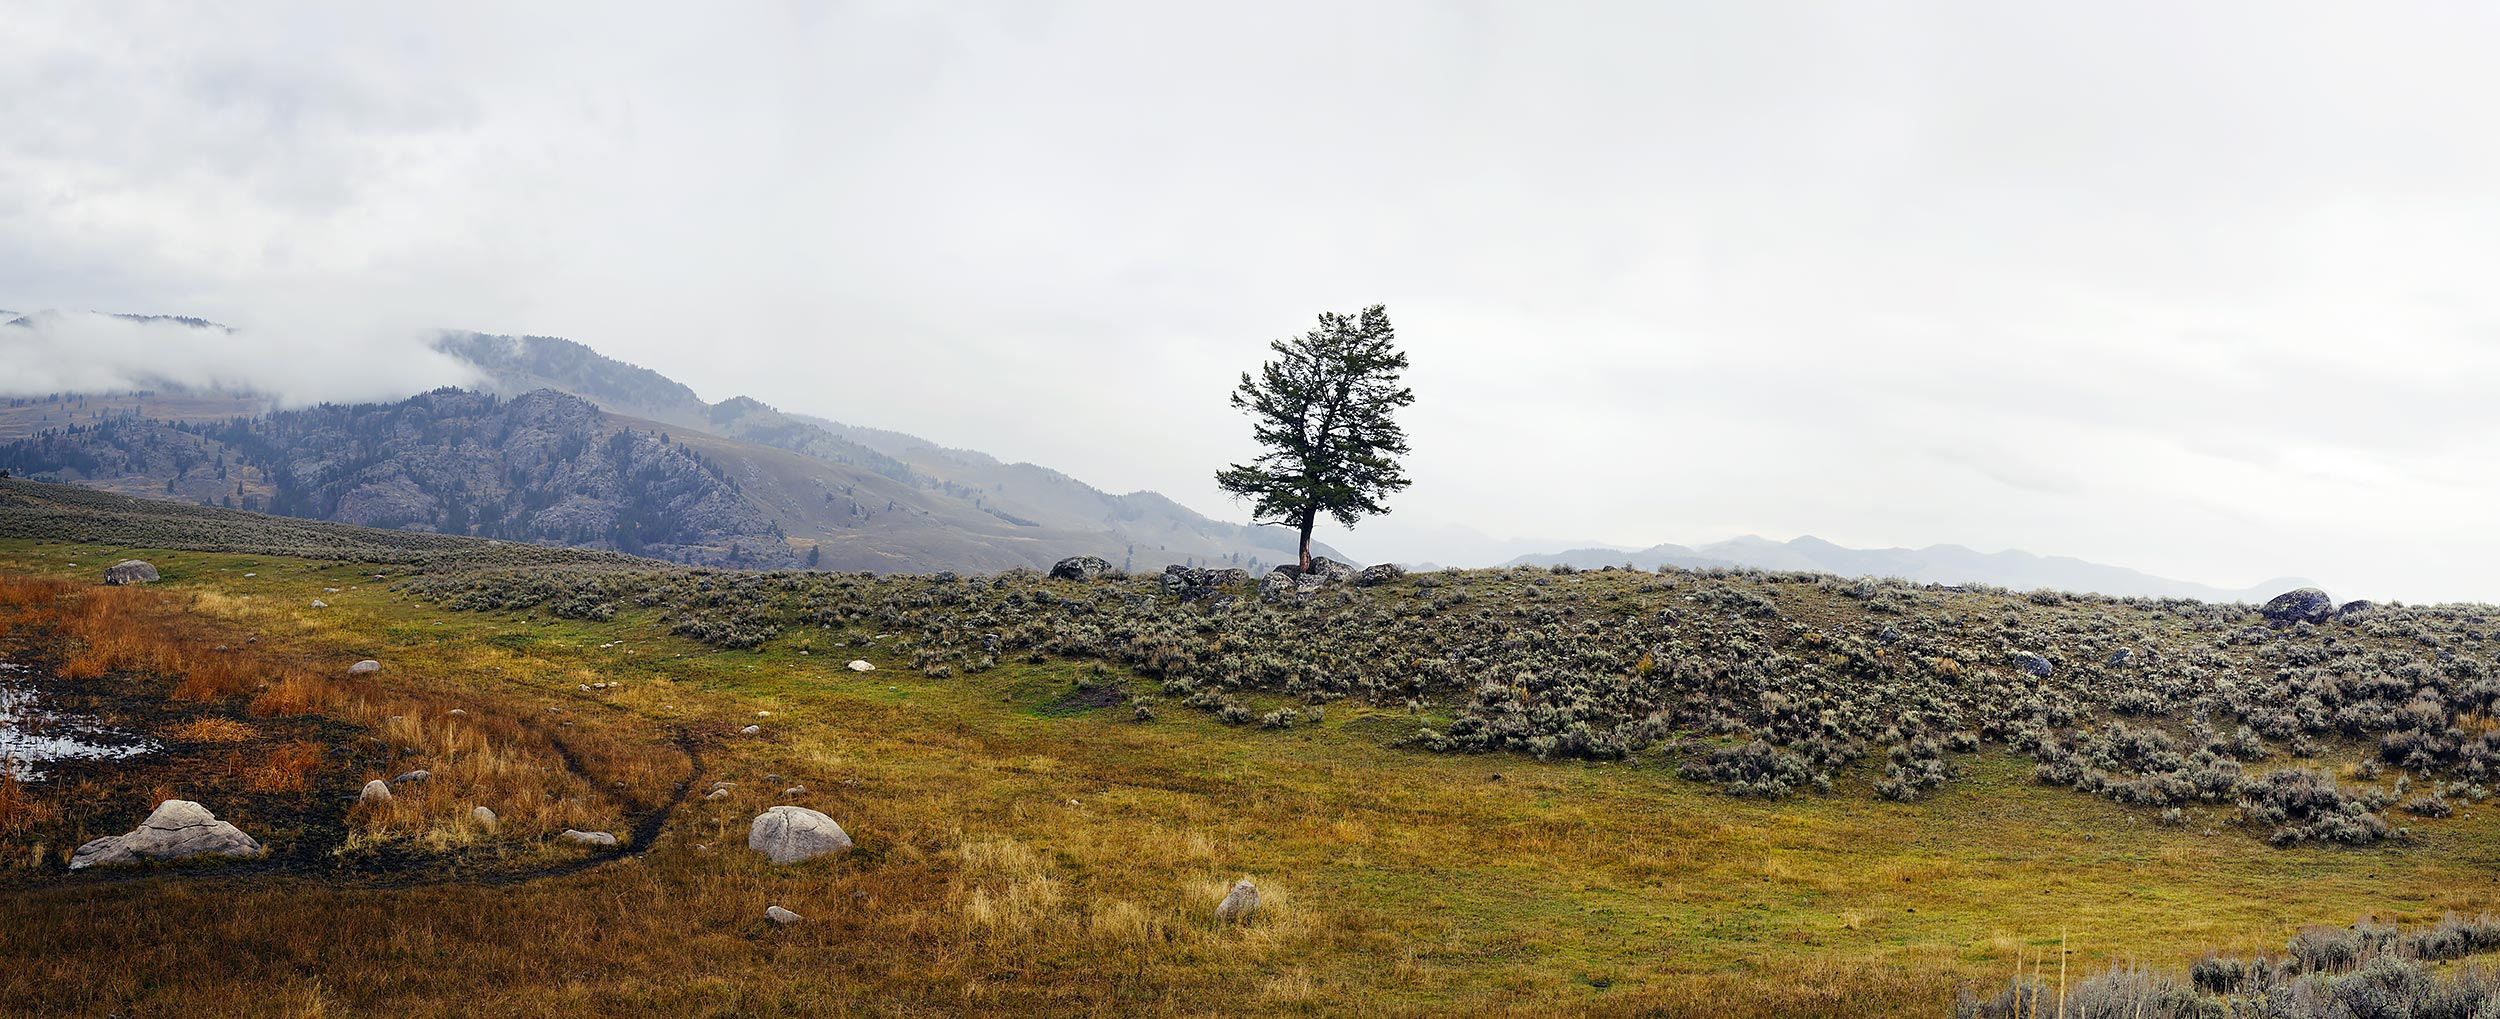 A Lone Tree Surrounded by Nurse Rocks, Yellowstone National Park